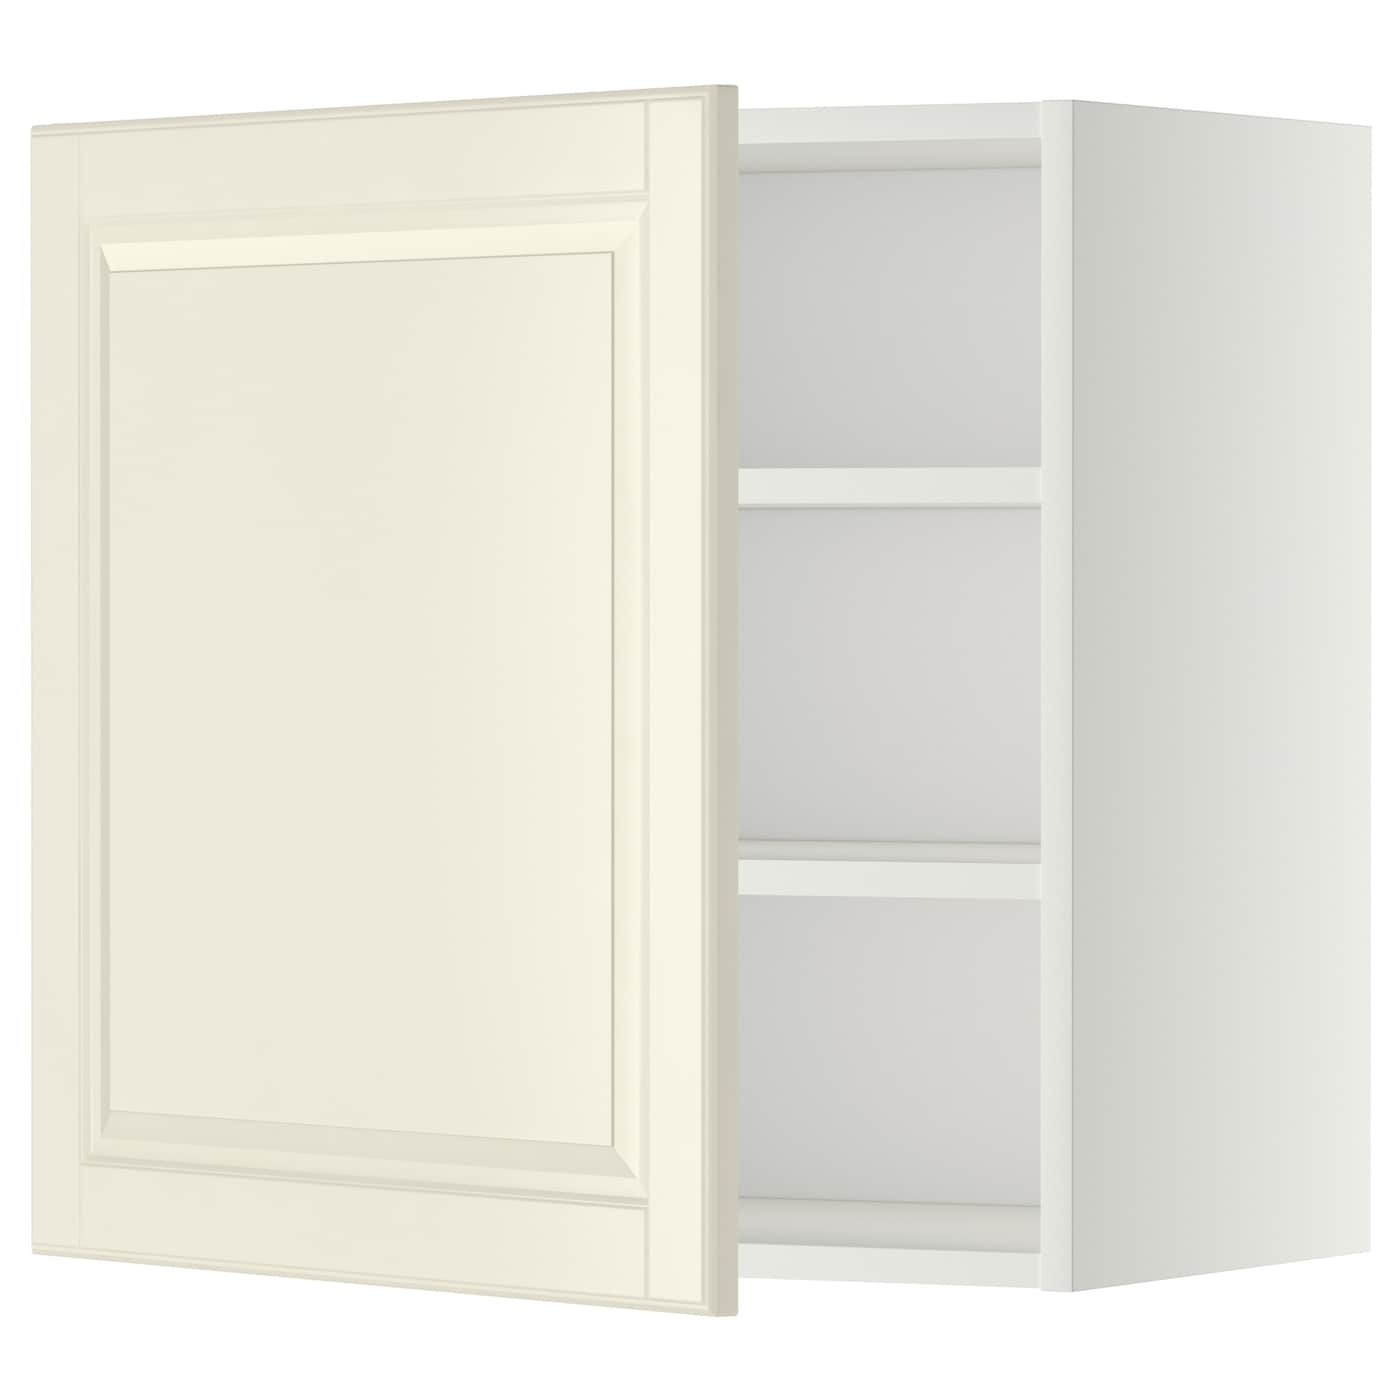 Metod wall cabinet with shelves white bodbyn off white for Off the shelf kitchen units